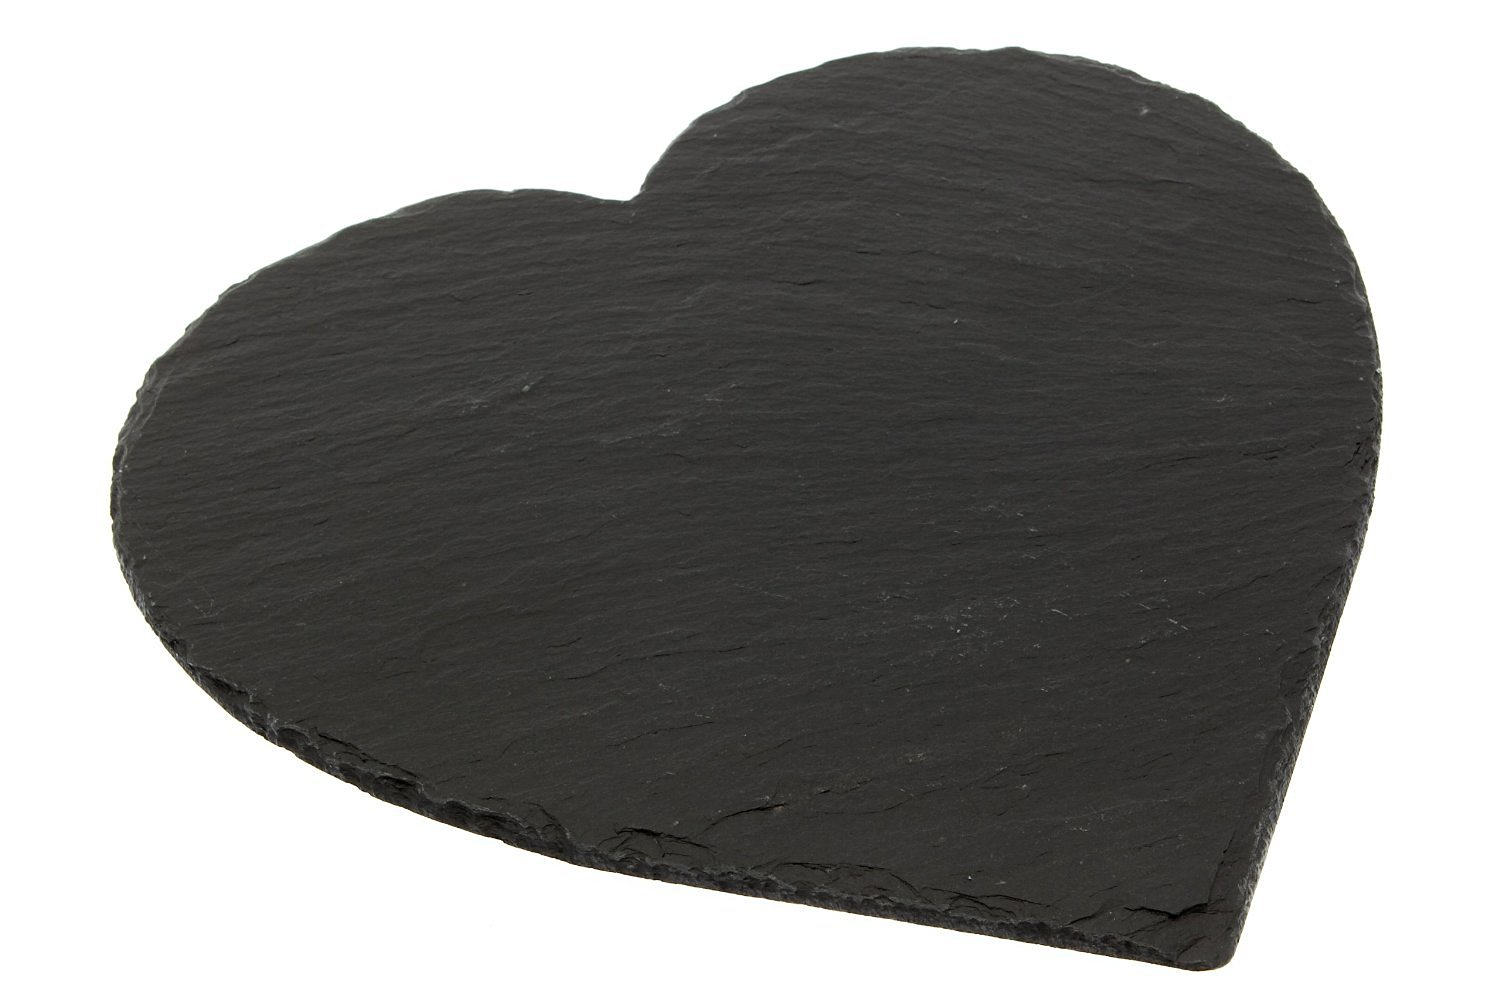 The Just Slate Company Heart-Shaped Natural Slate Place Mat, 9.75 x 9.75-Inch, Set of 2